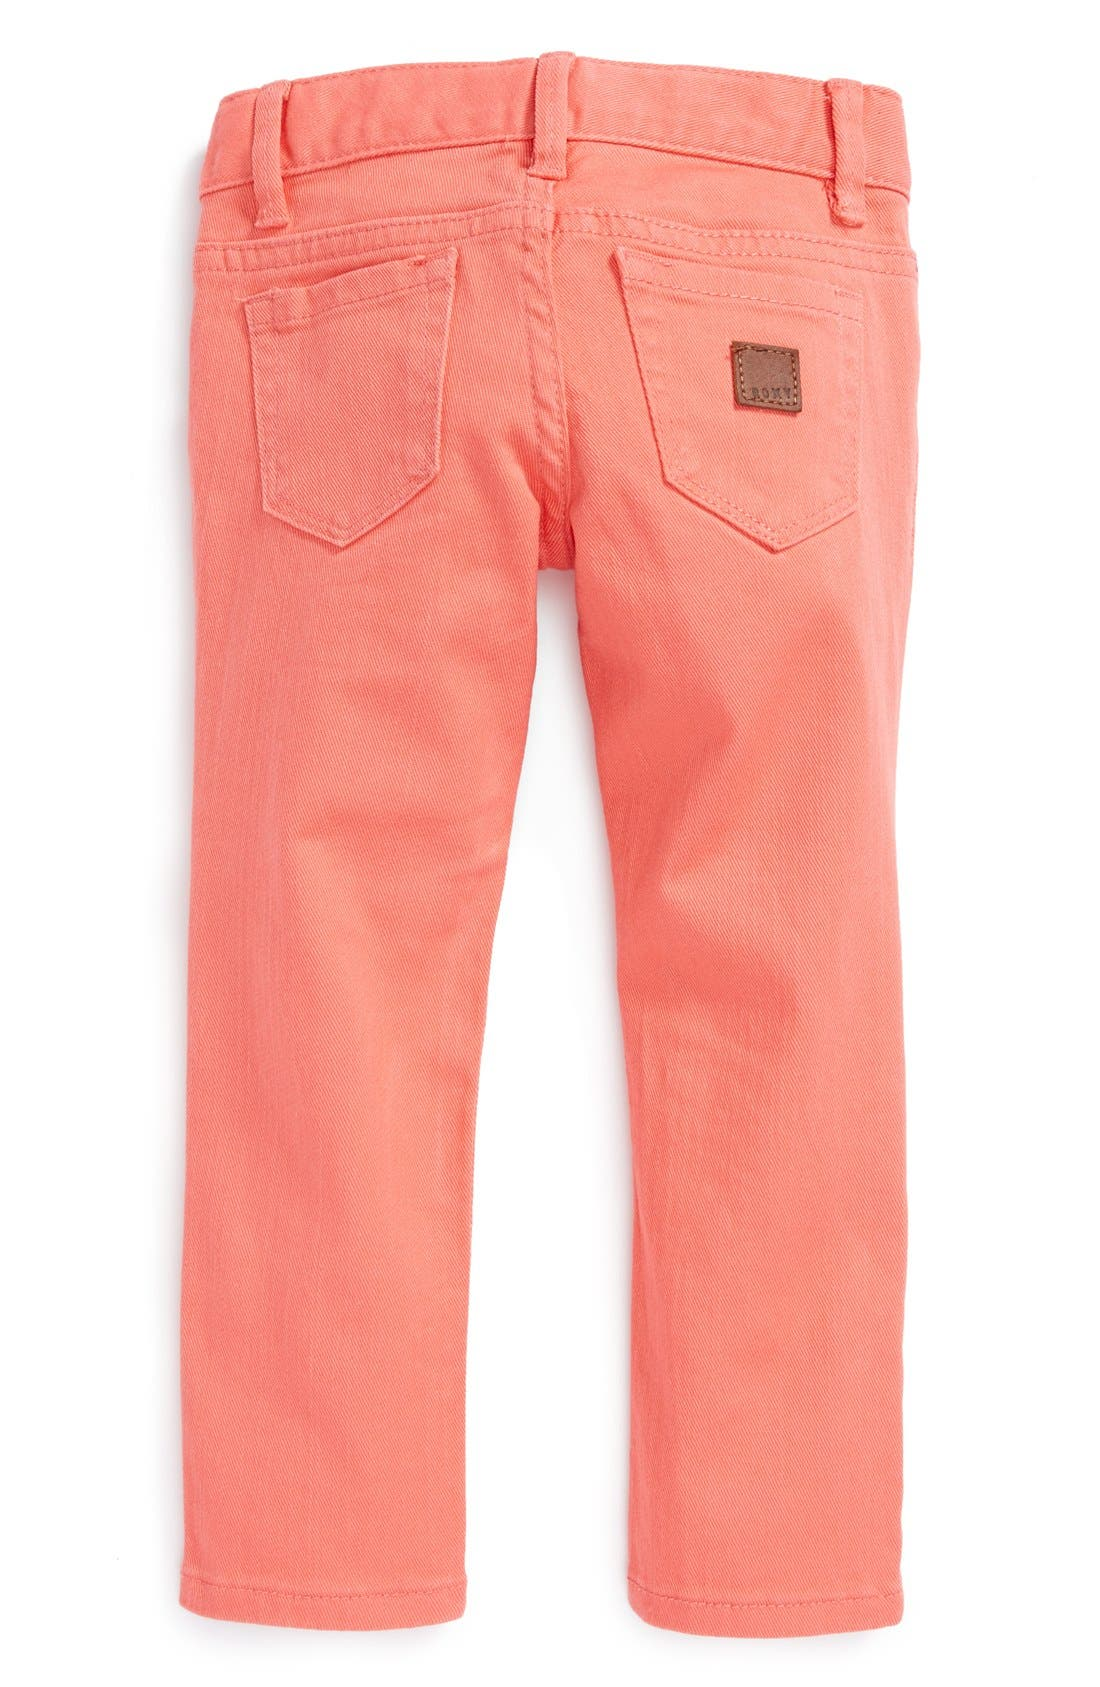 Alternate Image 1 Selected - Roxy 'Tawana' Skinny Jeans (Toddler Girls)